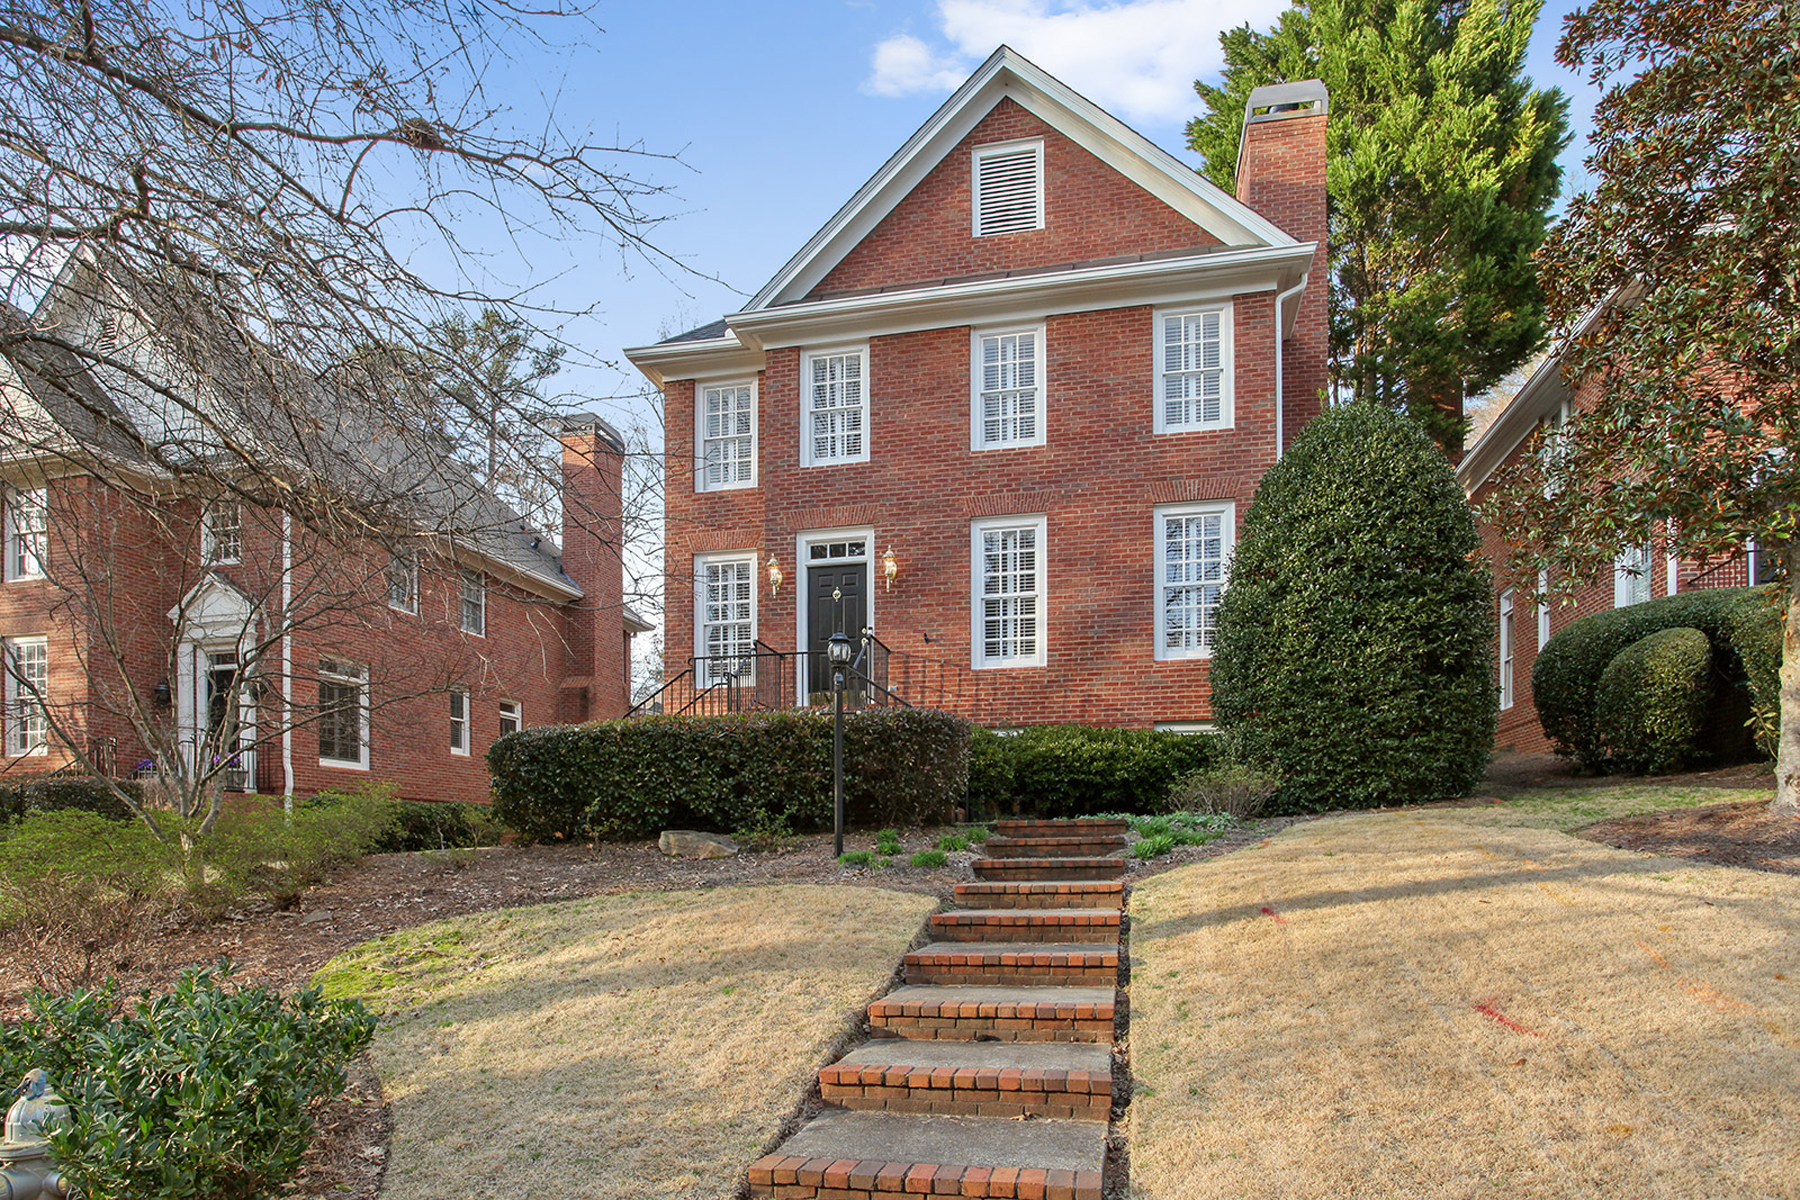 Single Family Home for Rent at Detached Townhome With Courtyard For Rent In Historic Brookhaven 1131 Brookhaven Court Brookhaven, Georgia 30319 United States